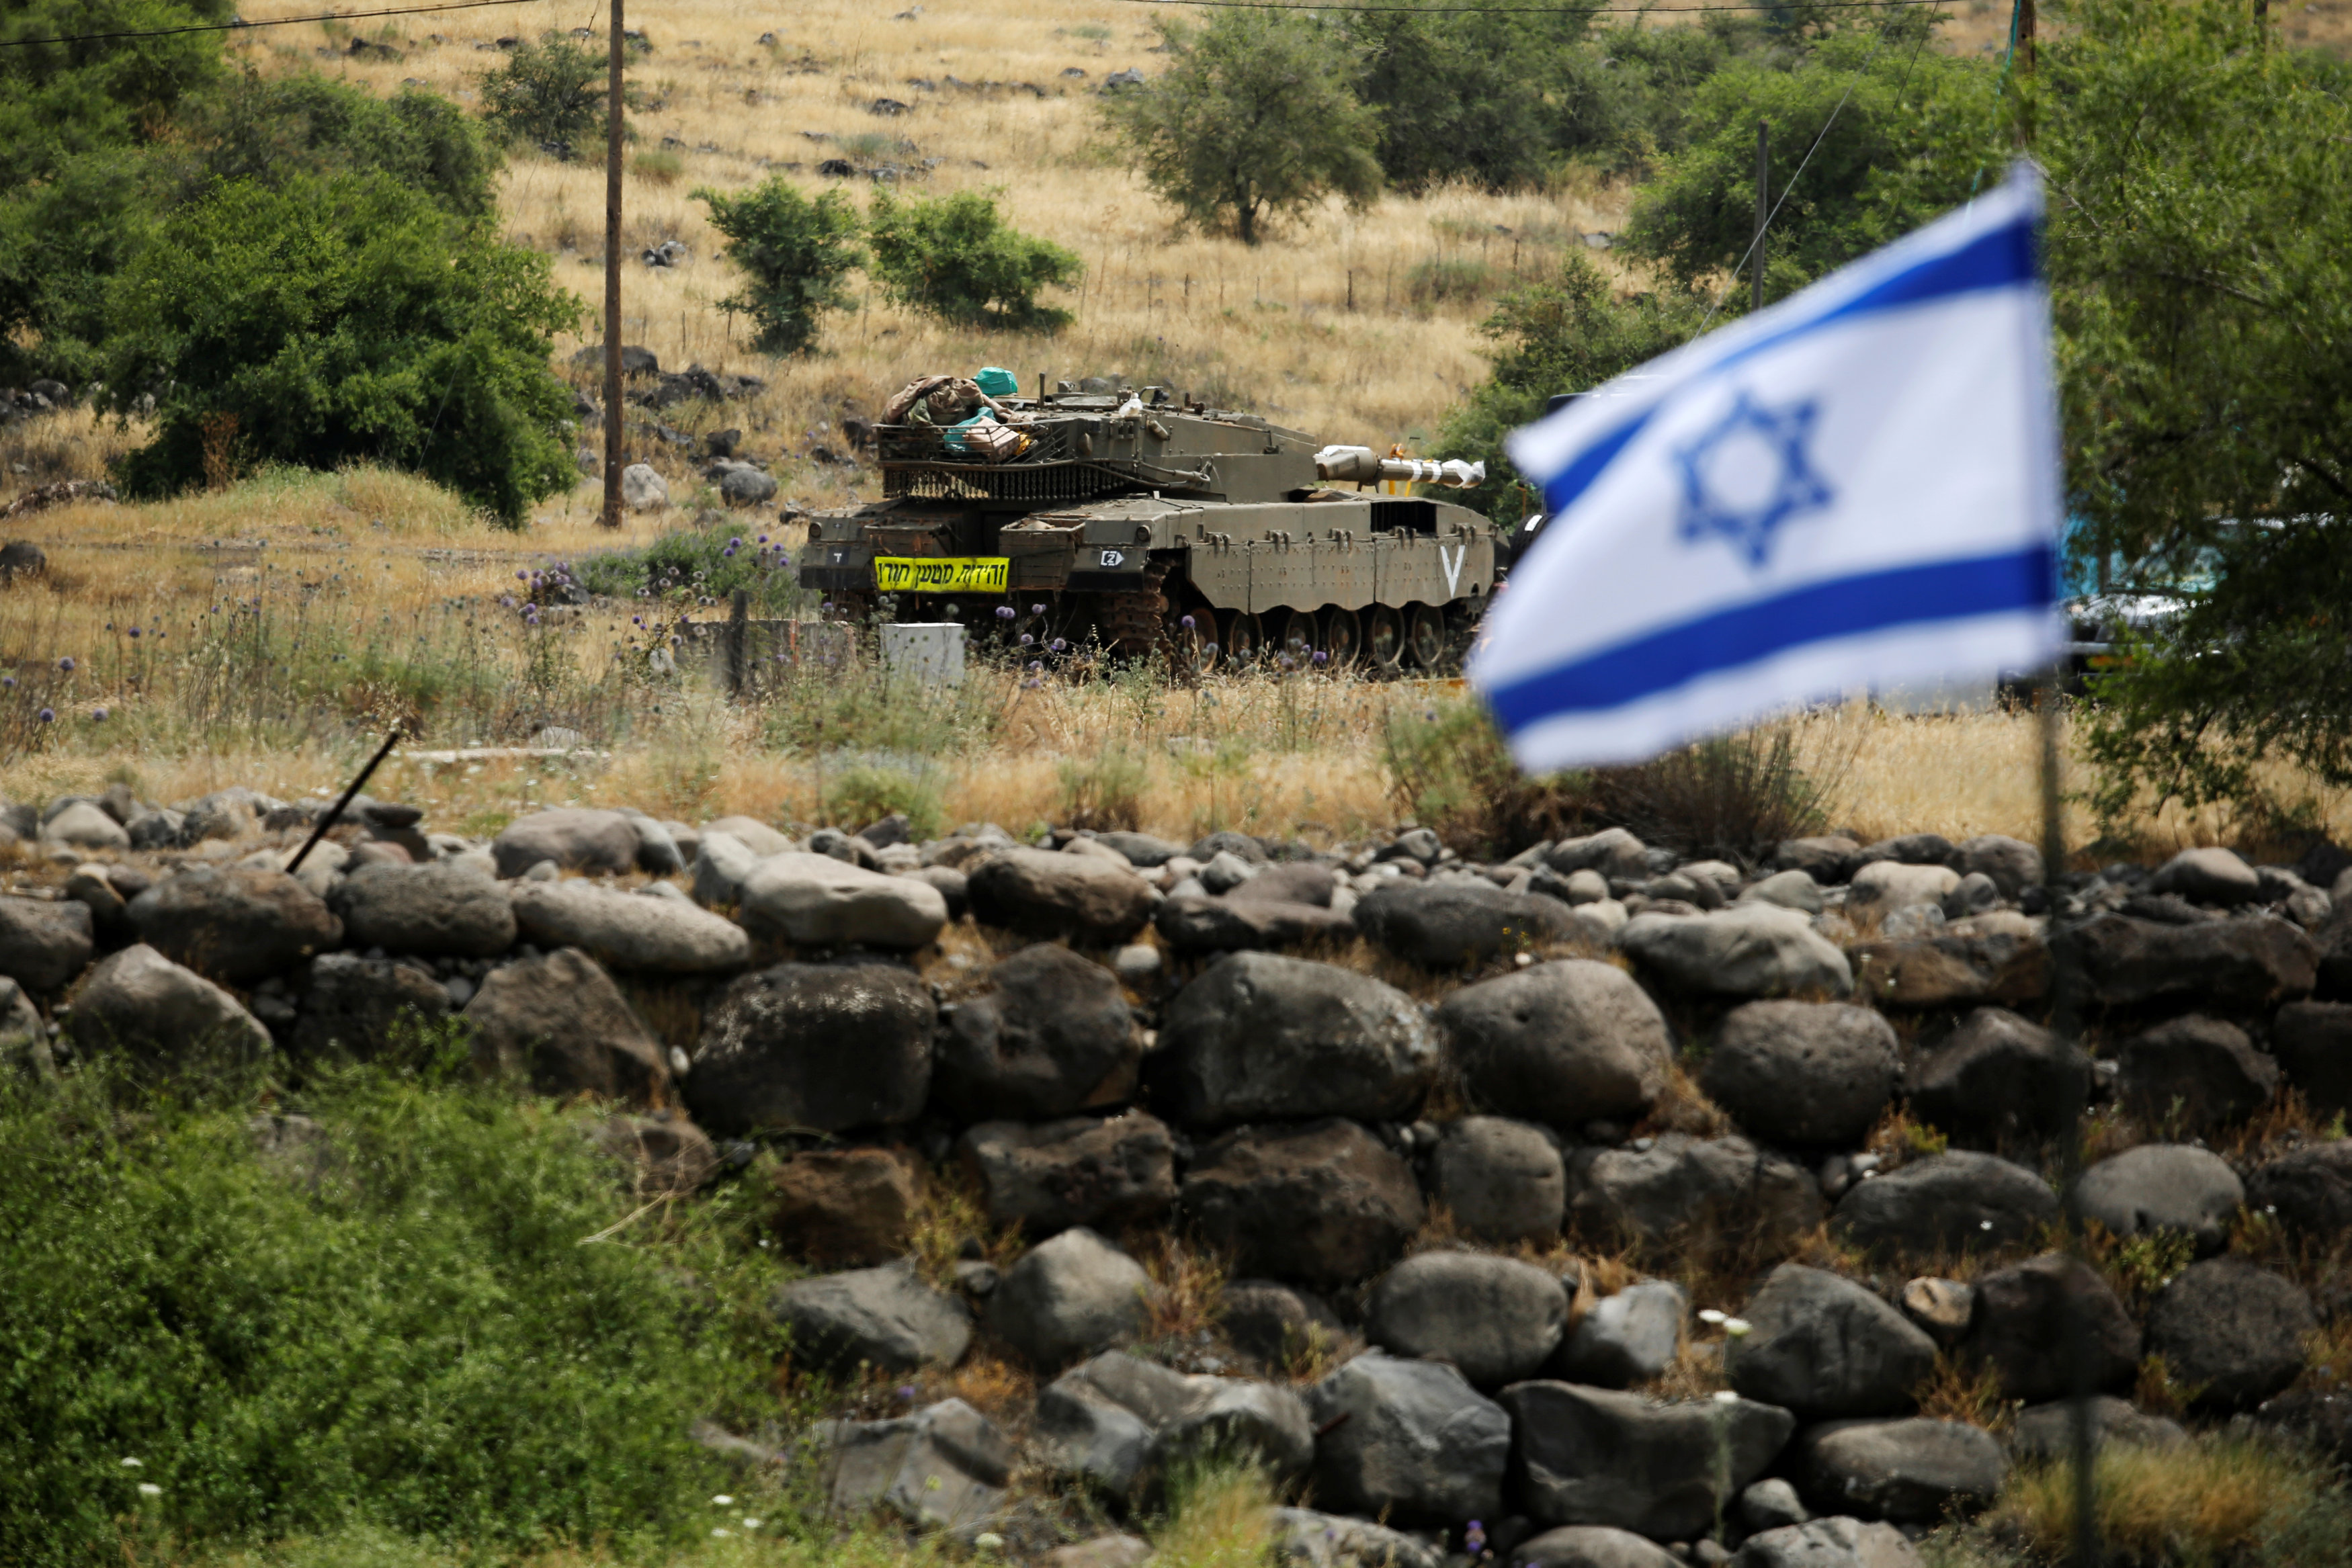 An Israeli tank can be seen near the Israeli side of the border with Syria in the Israeli-occupied Golan Heights, Israel May 9, 2018. REUTERS/Amir Cohen